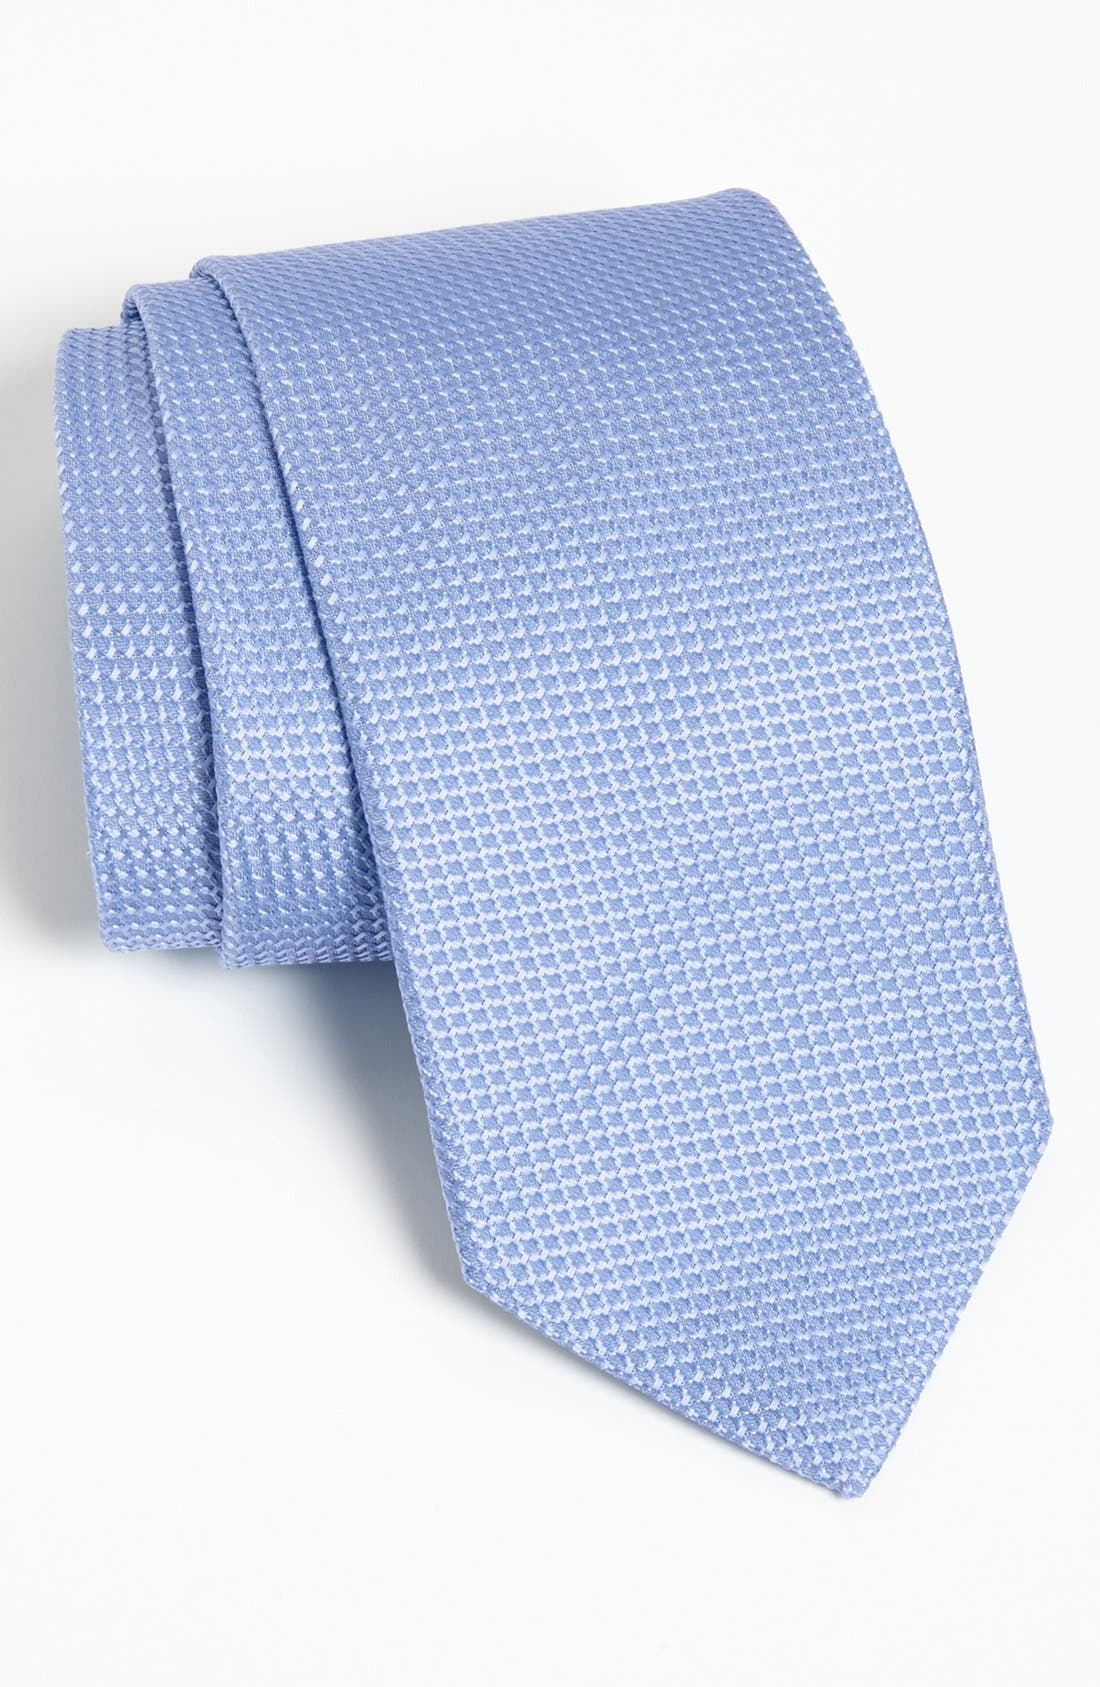 Alternate Image 1 Selected - Brook 'Brothers' Woven Silk Tie IMT TEST IMT TEST IMT TEST & Proofer tes - TEST 02/06. TEST